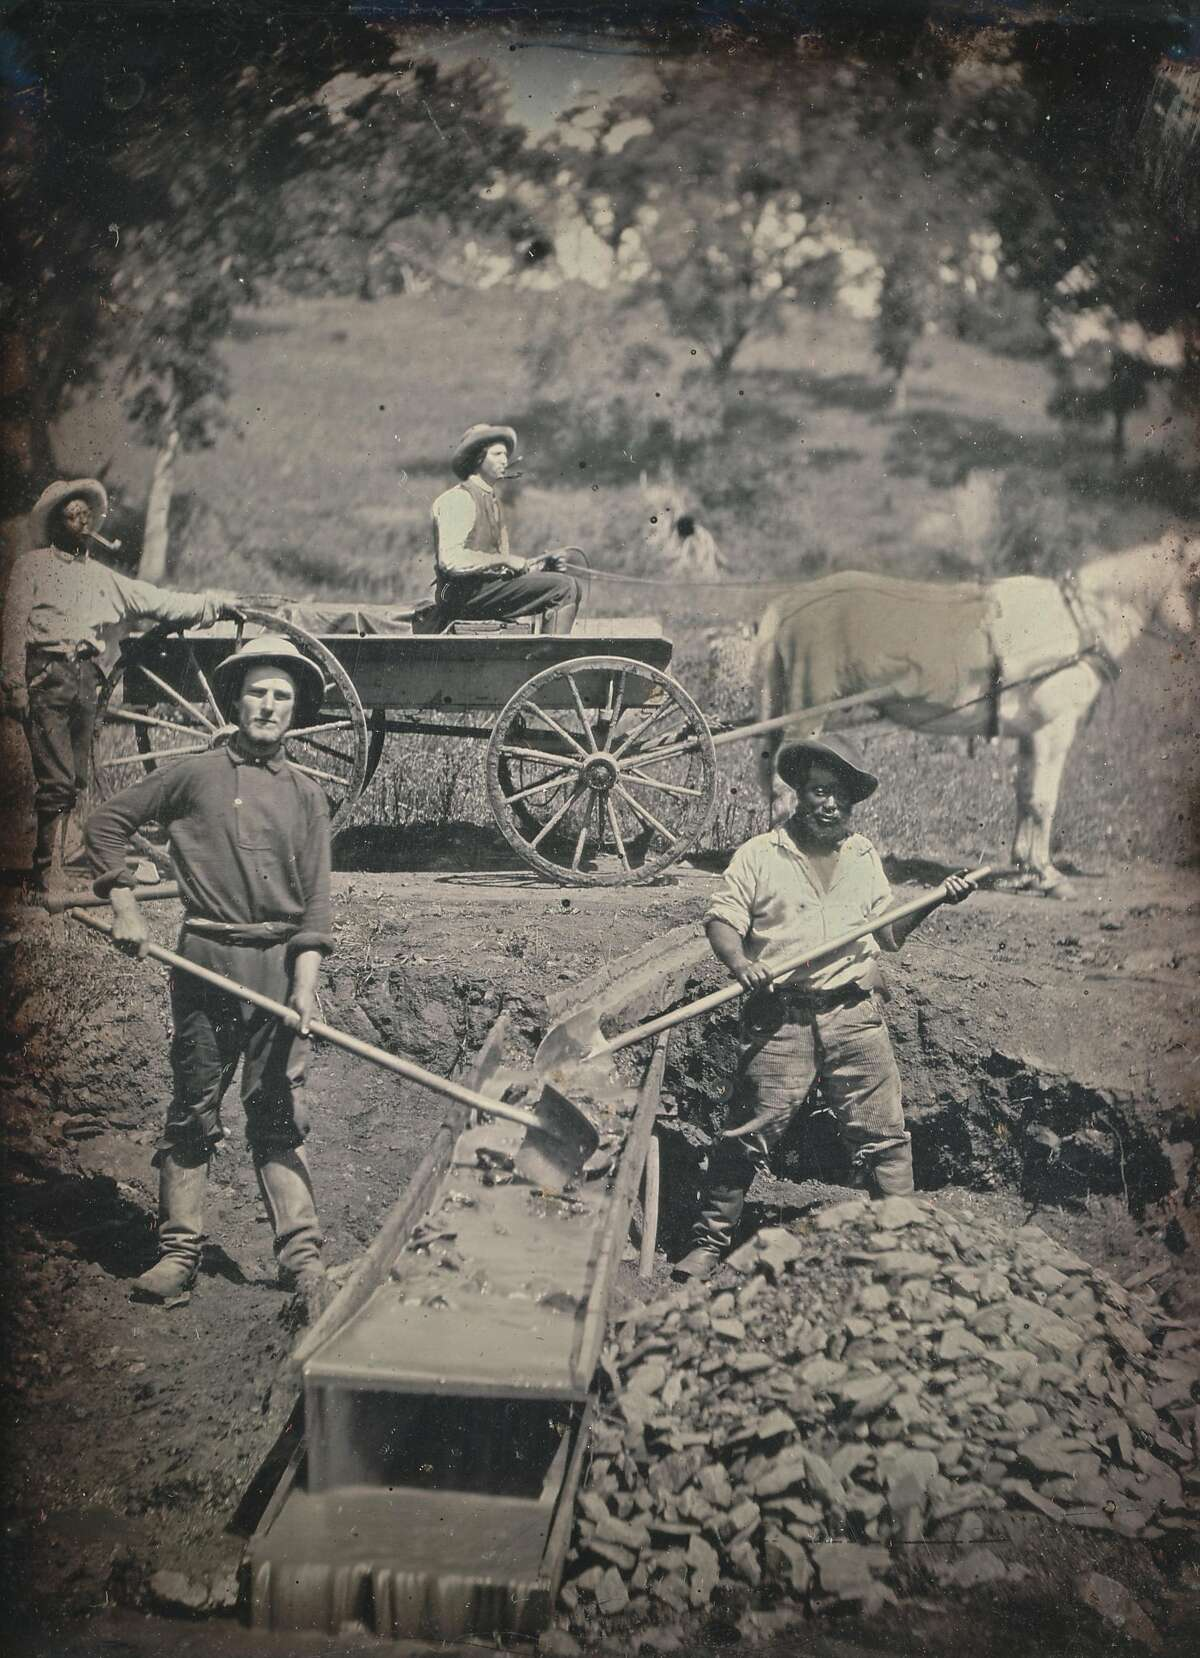 African American and white miners during the Gold Rush era in 1852. The photograph was taken near Spanish Flat (Napa County).